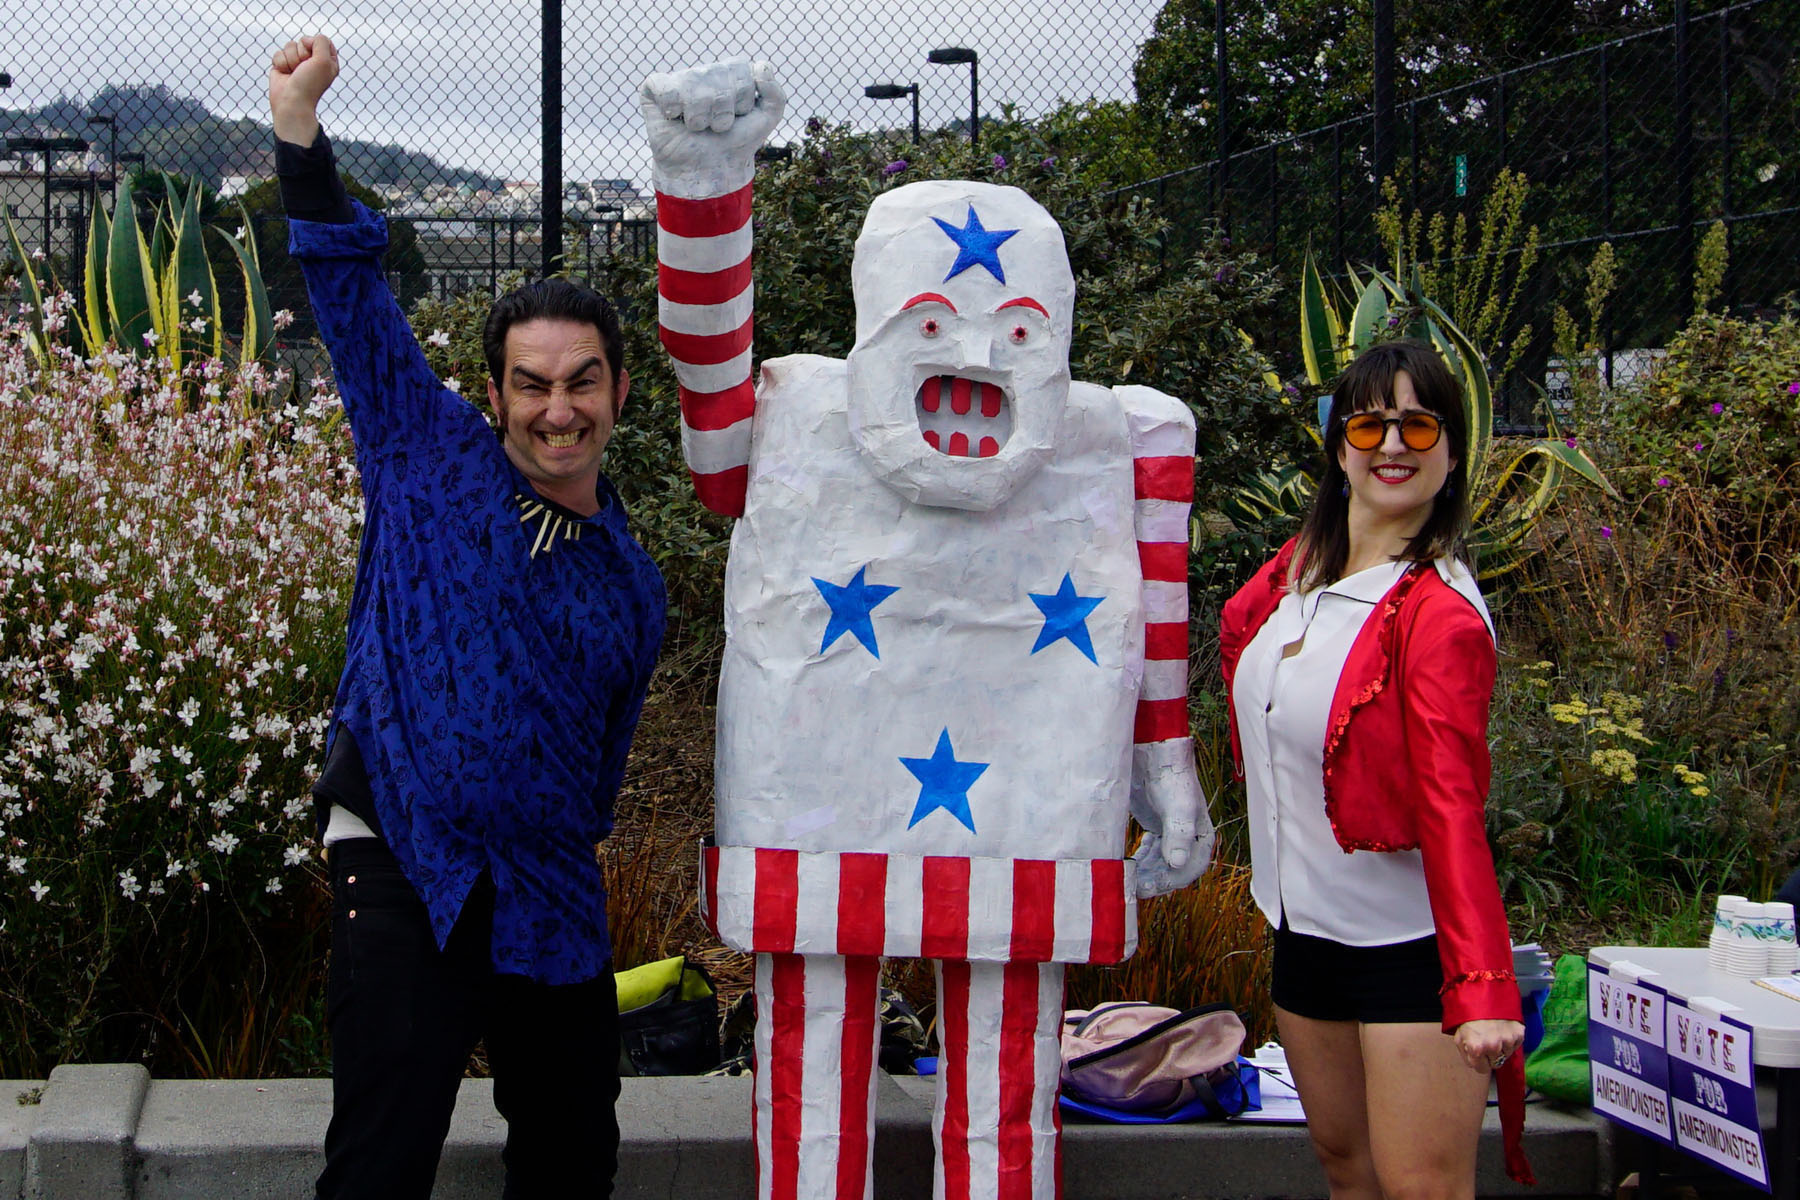 Two performers in red white and blue clothing pose next two a life-size golem puppet, the Amerimonster, with raised fists.